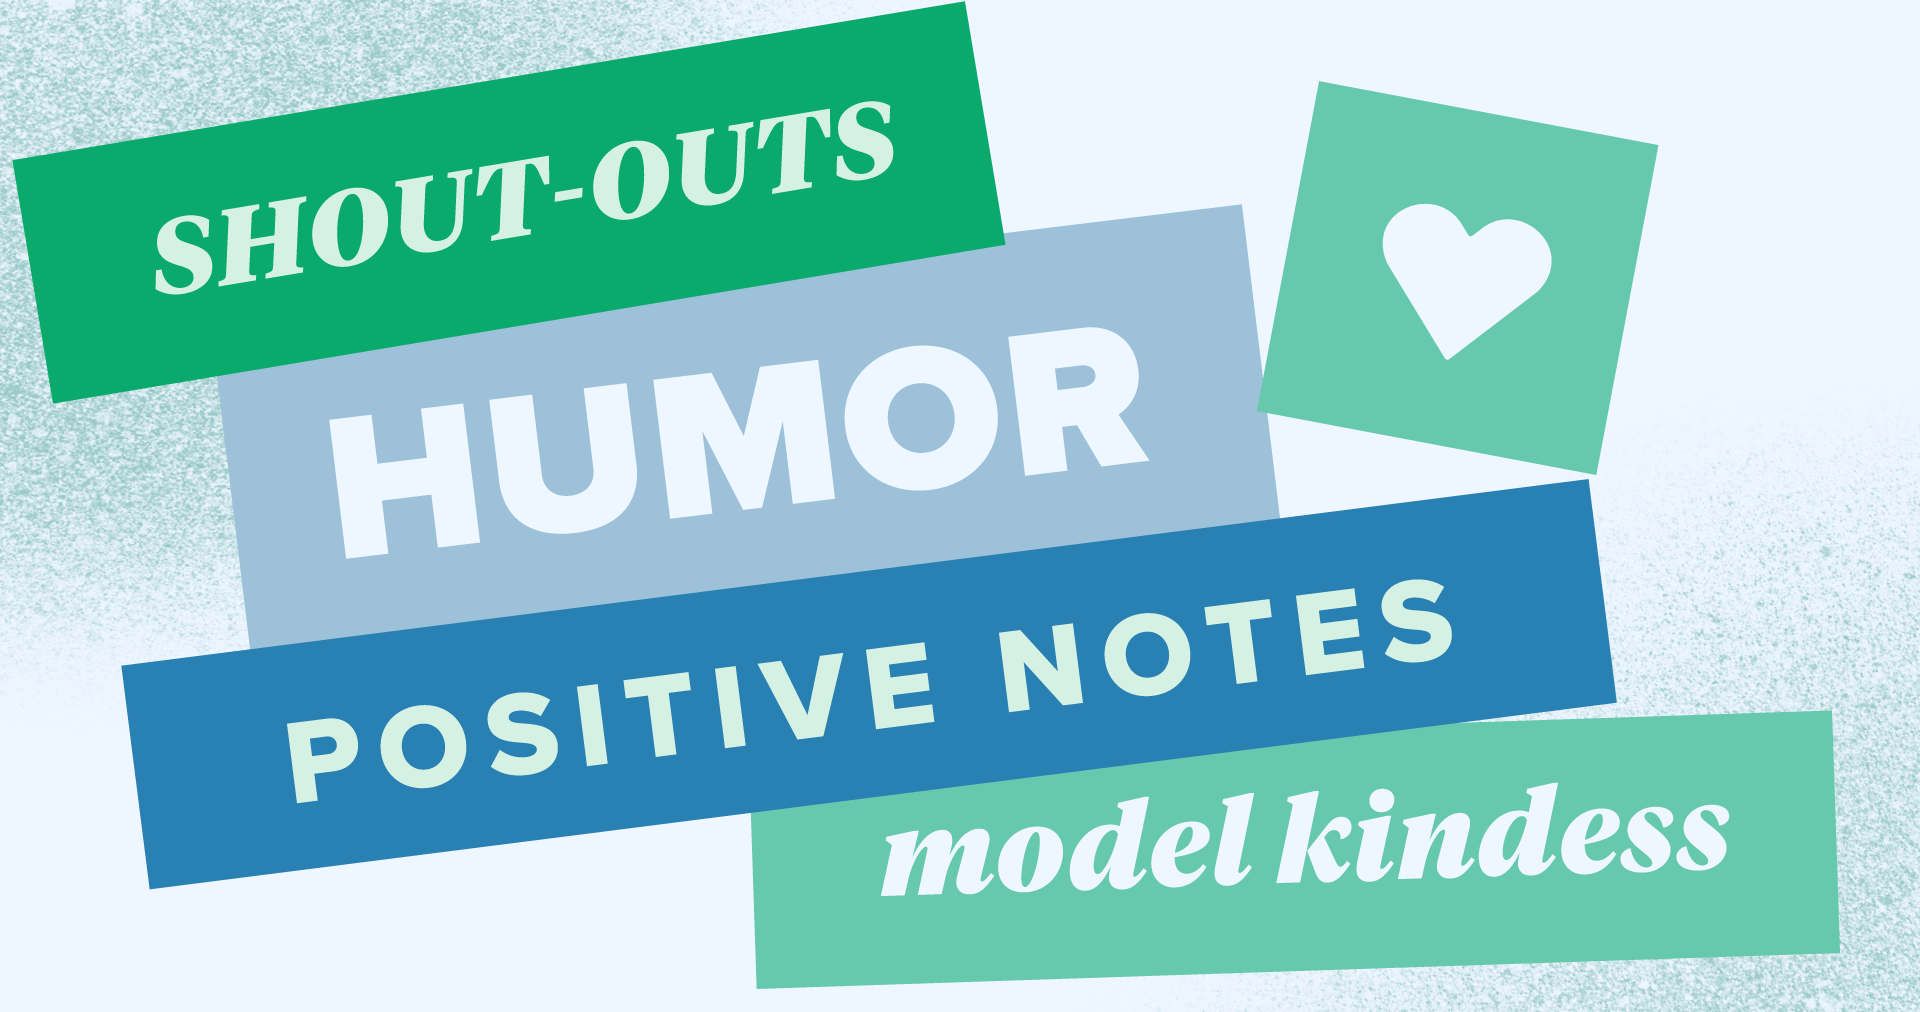 The words 'shout outs', 'humor', 'positive notes', and 'model kindness' in different blue and green fonts